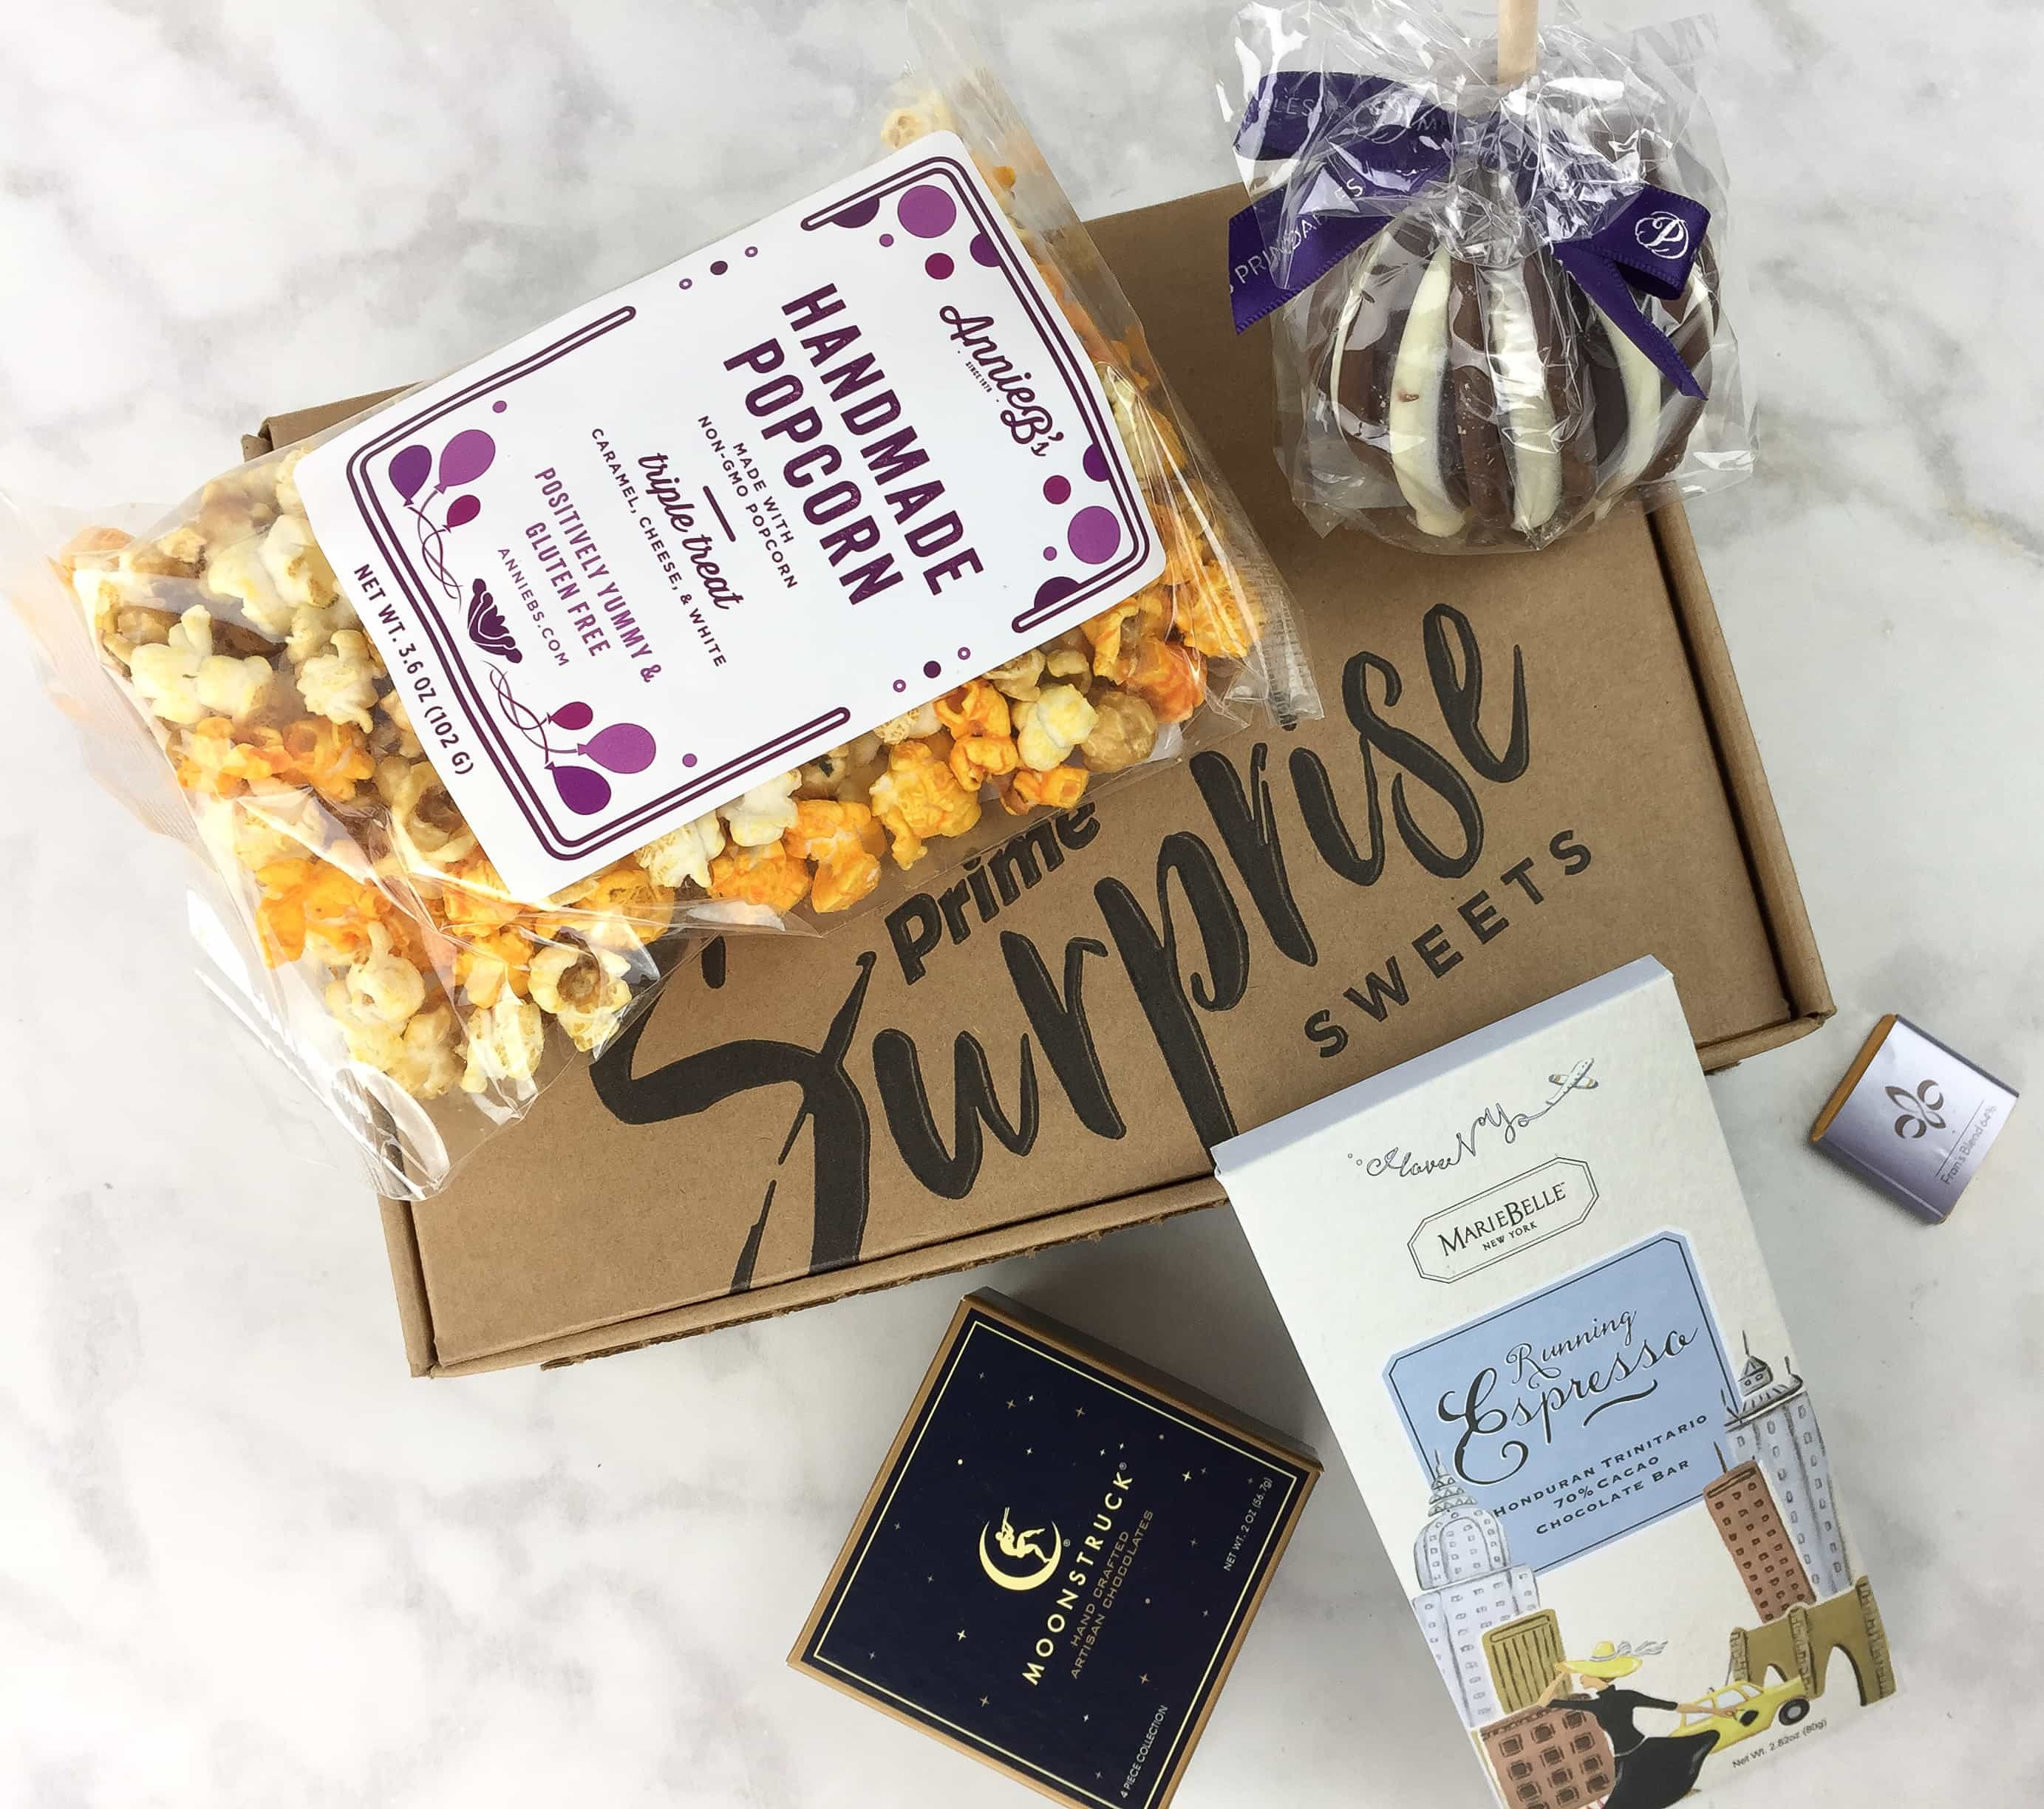 Amazon Prime Surprise Sweets Box March 2017 Review #2